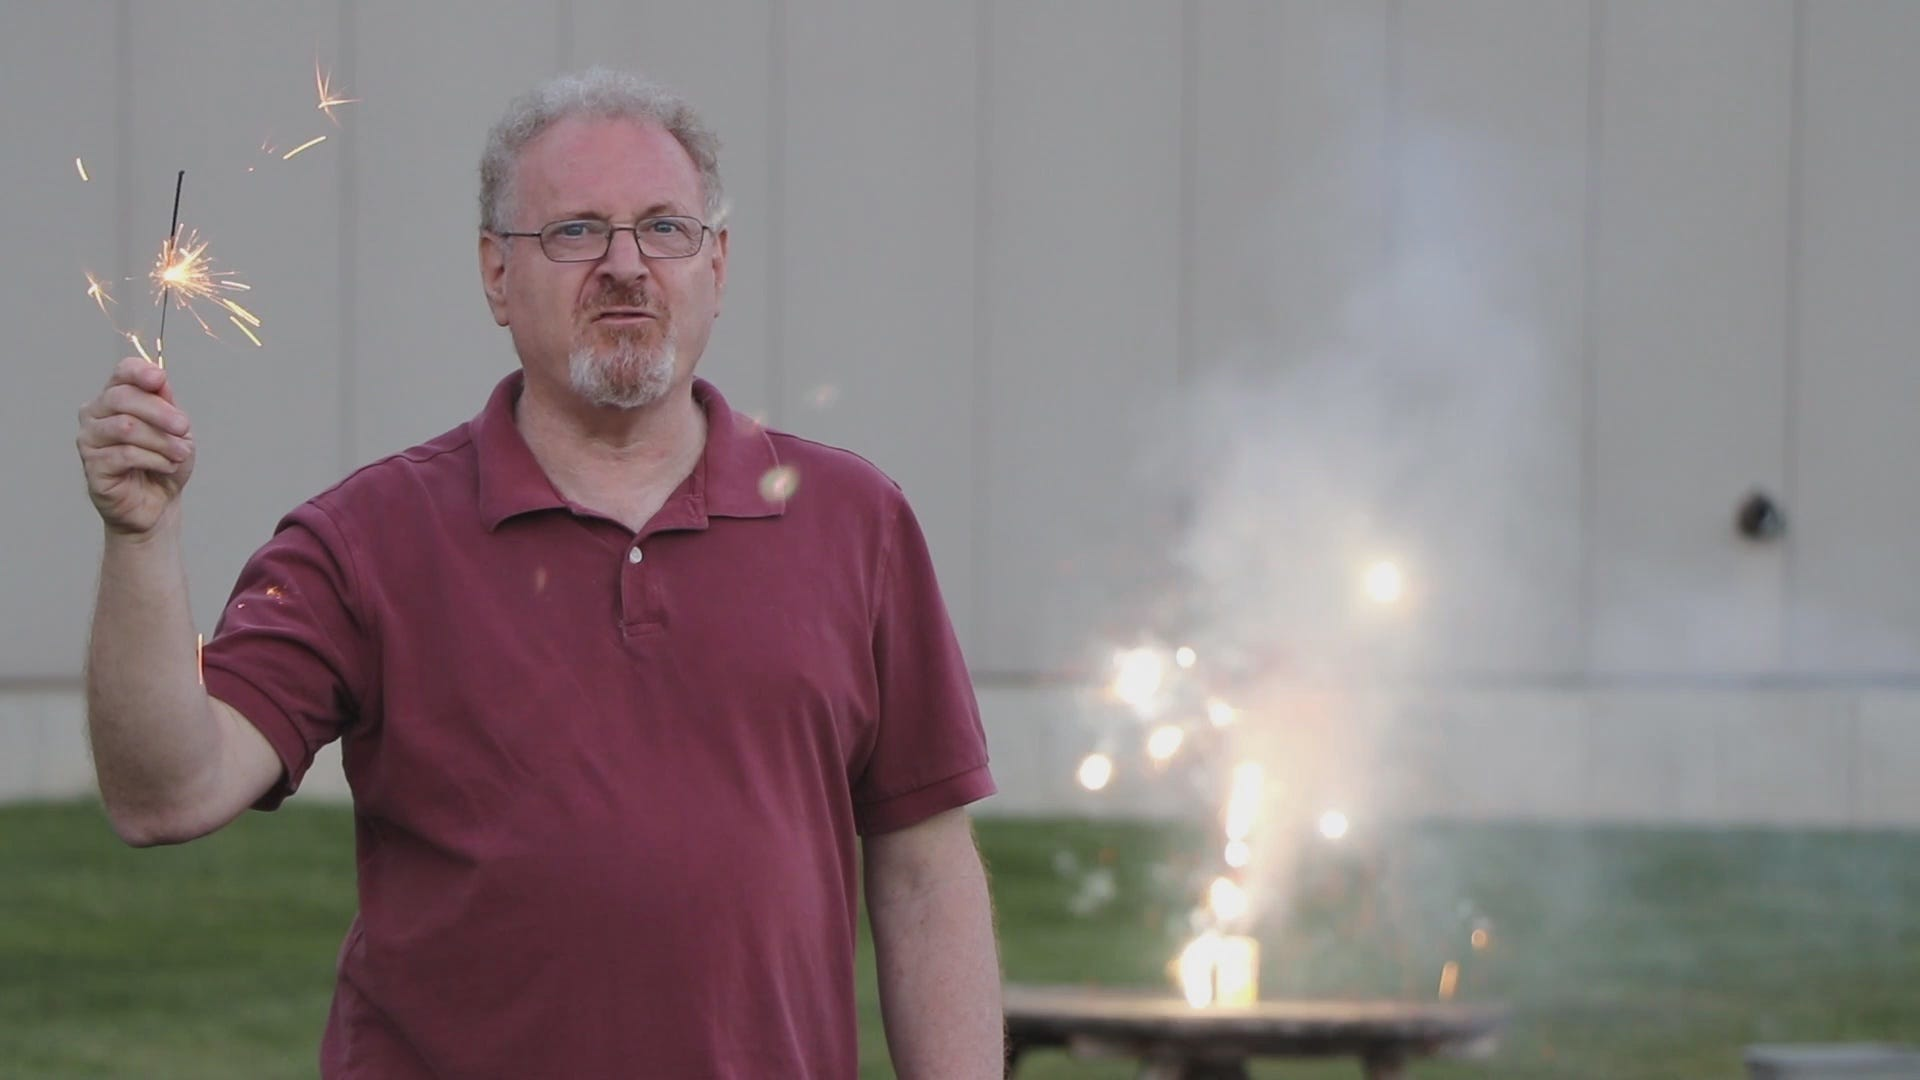 Fireworks legal in New Jersey? Well, sort of